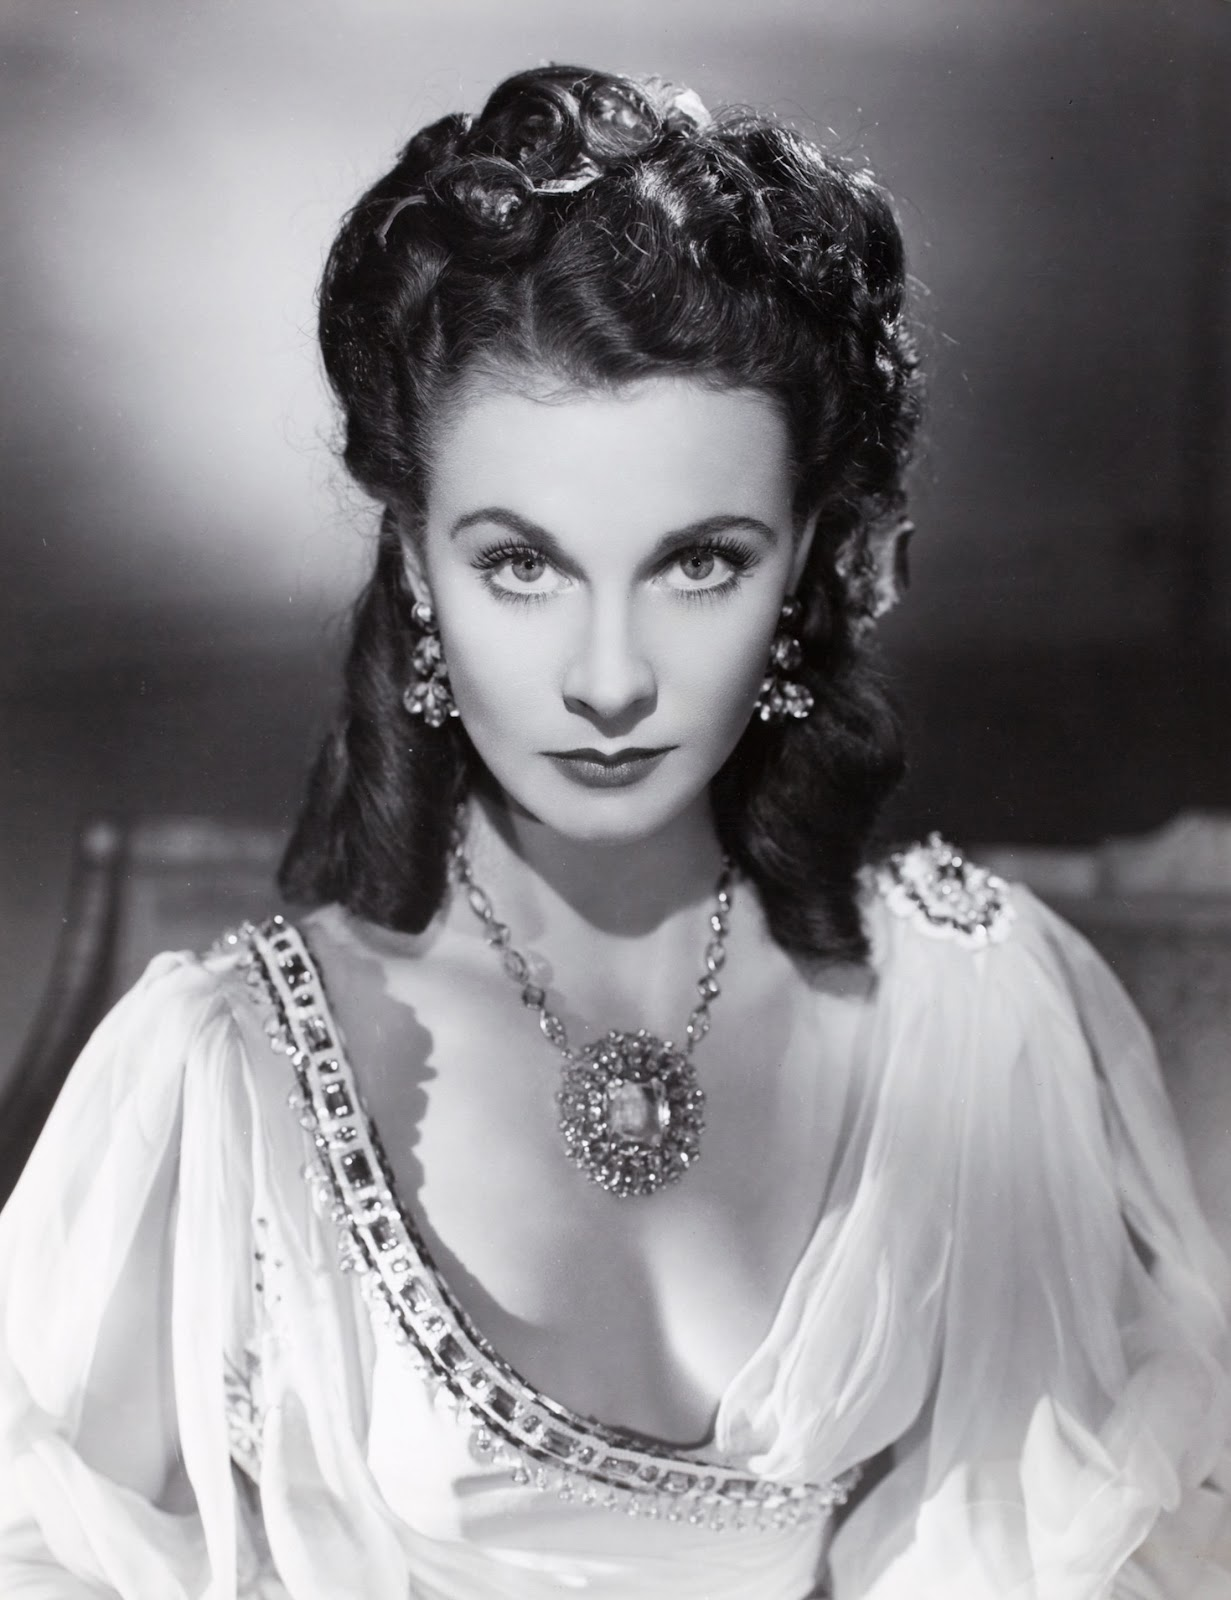 lady hamilton vivien leigh - photo #27